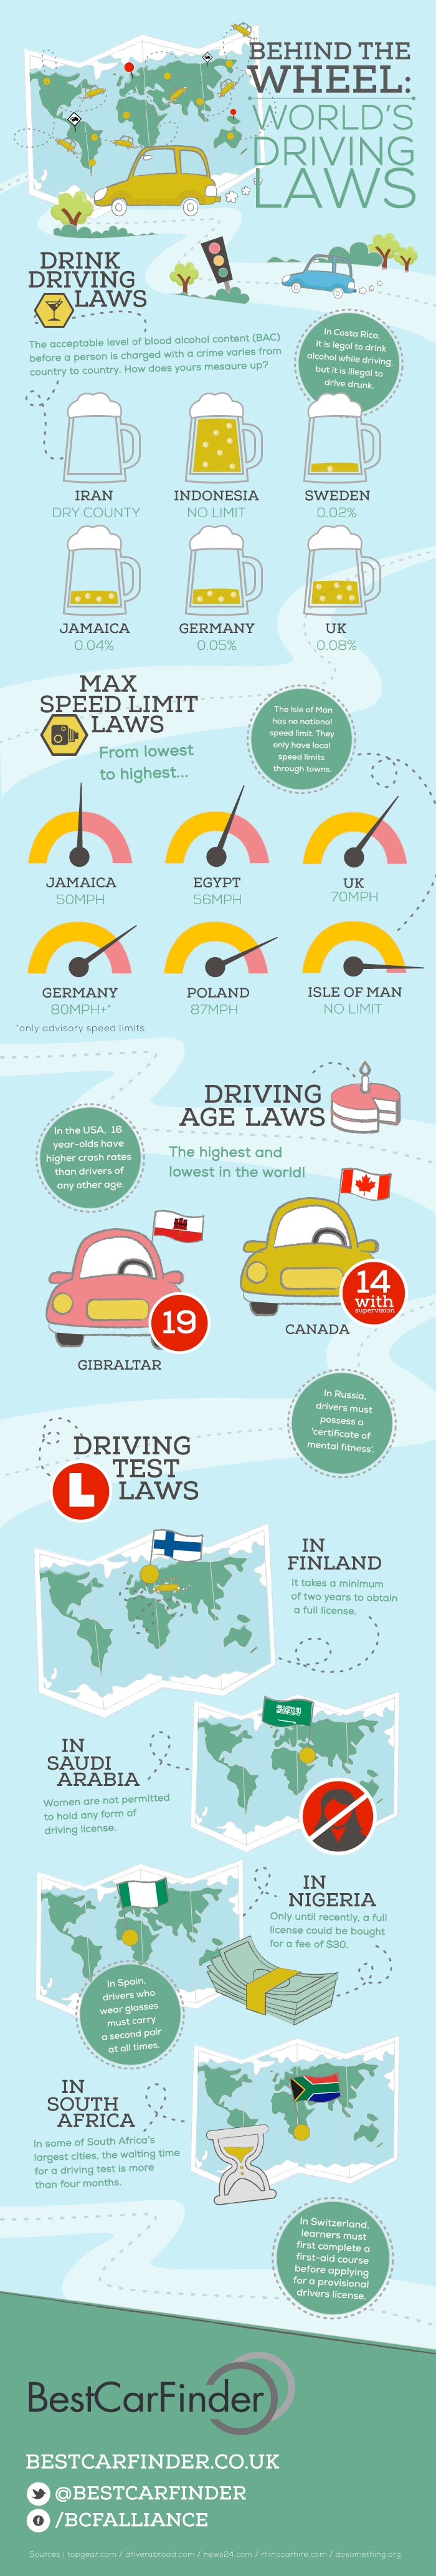 World Driving Laws  What does it take to be 1safedriver for a world traveler? Speed Limits, Driving Age, Test requirements, DUI limits